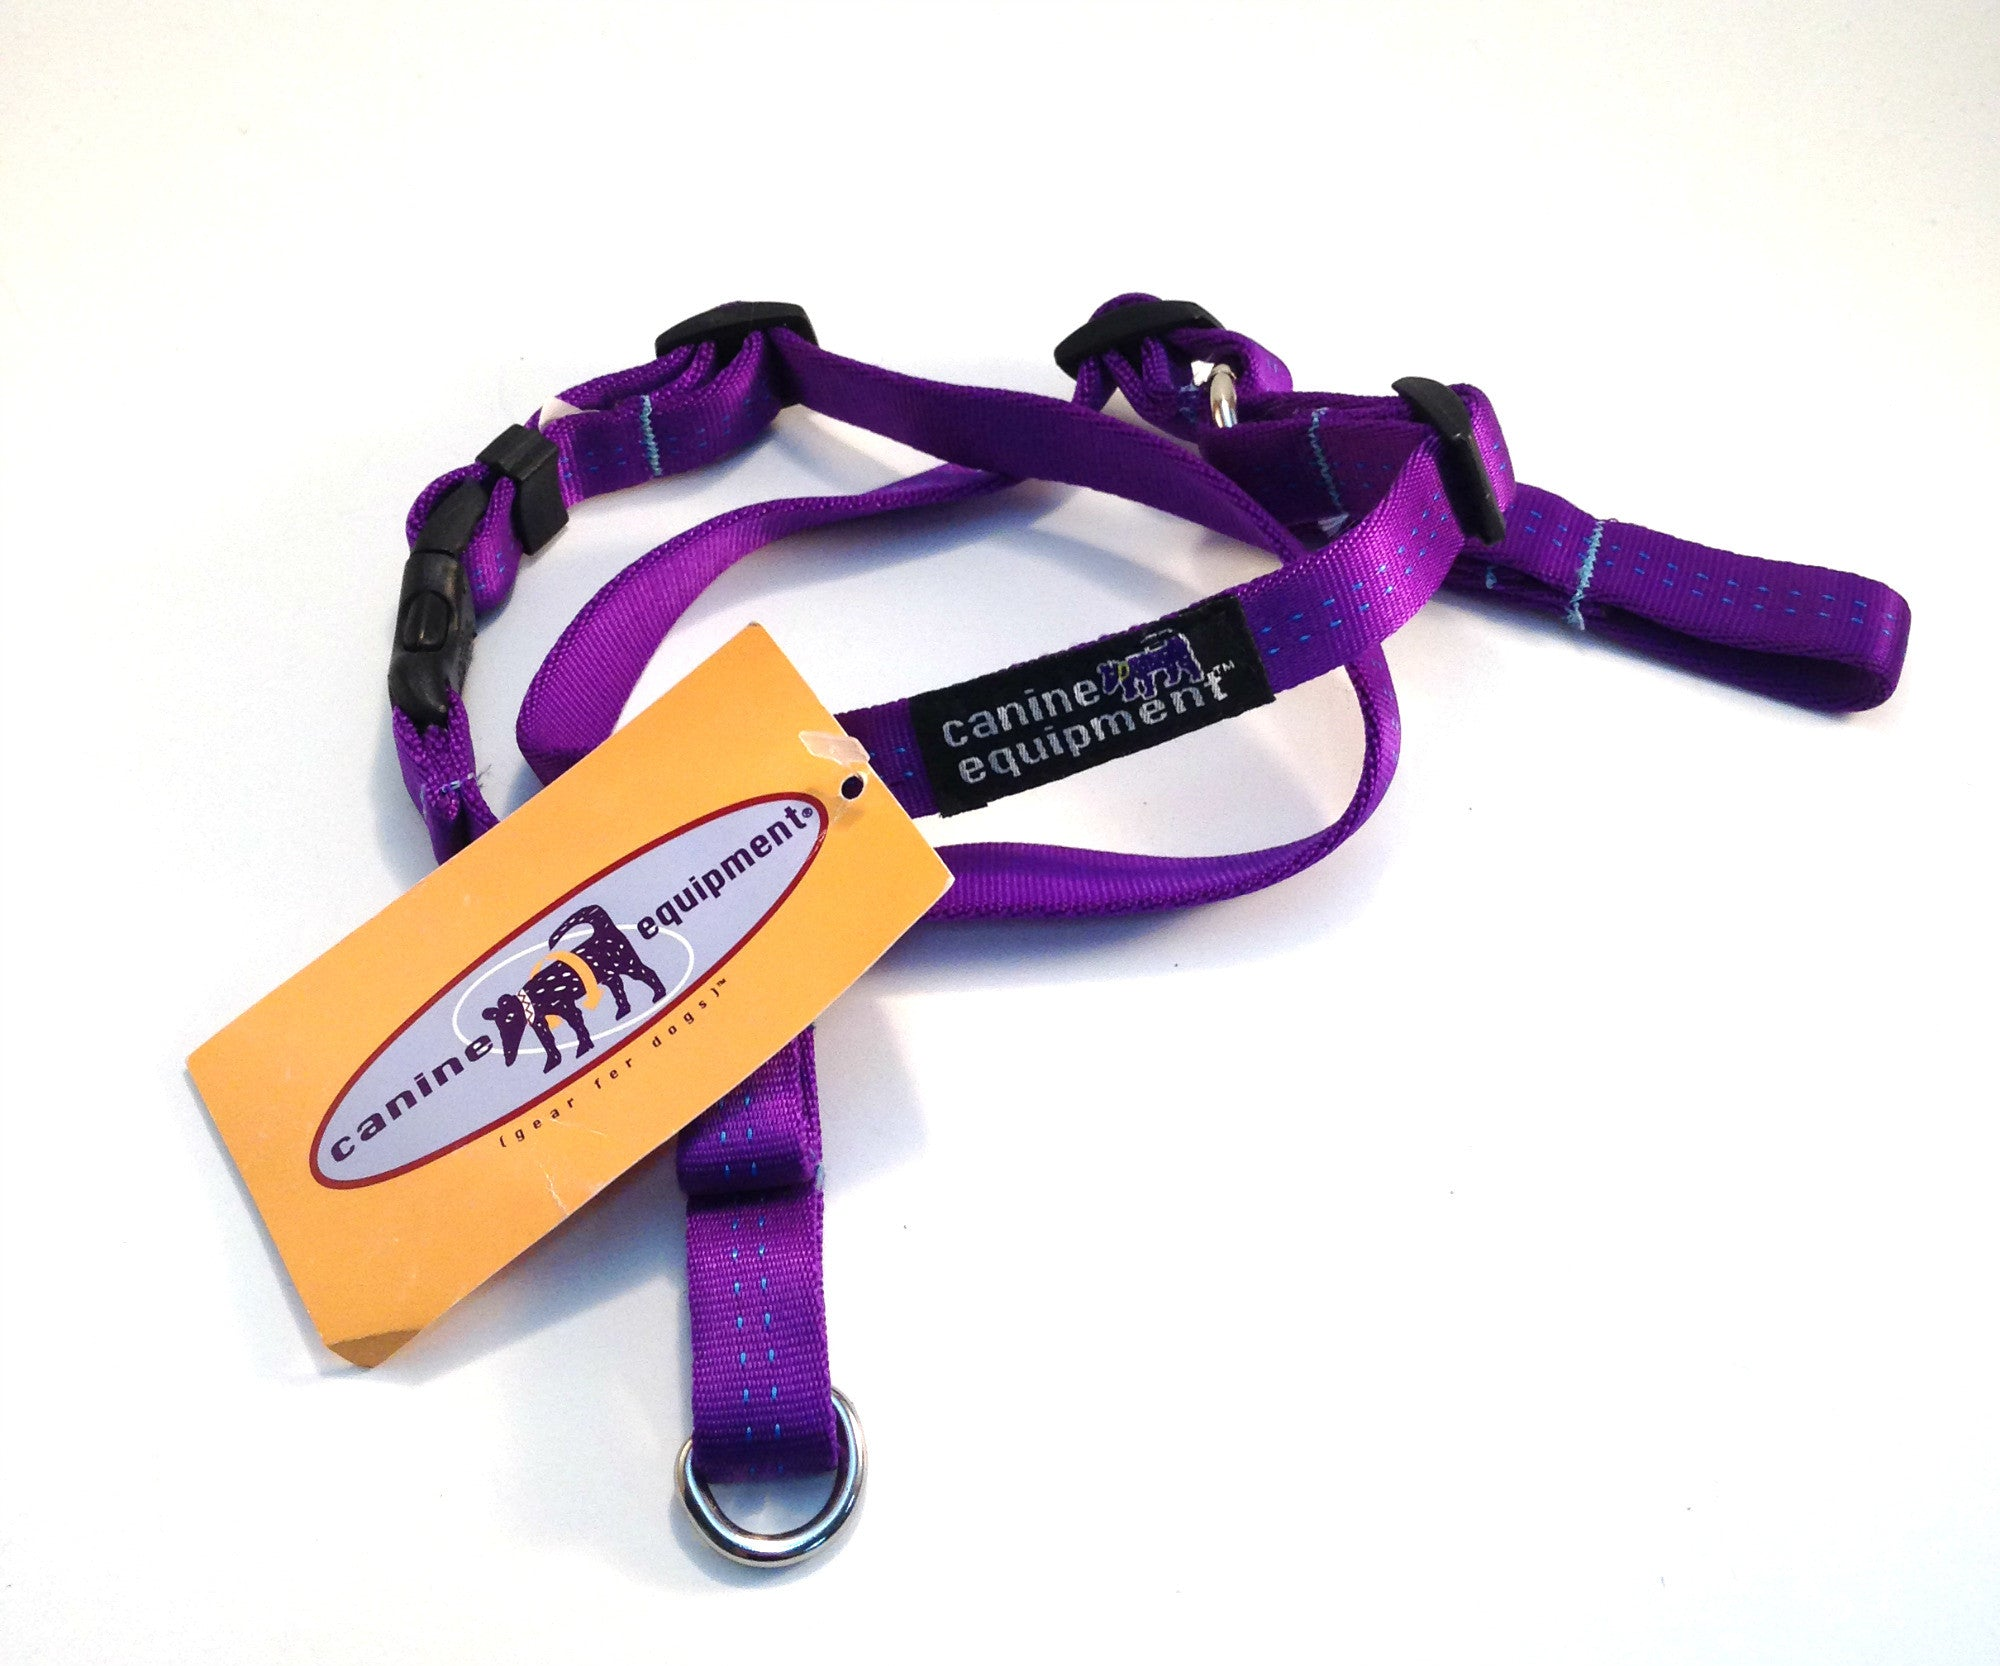 Canine Equipment Harness Purple